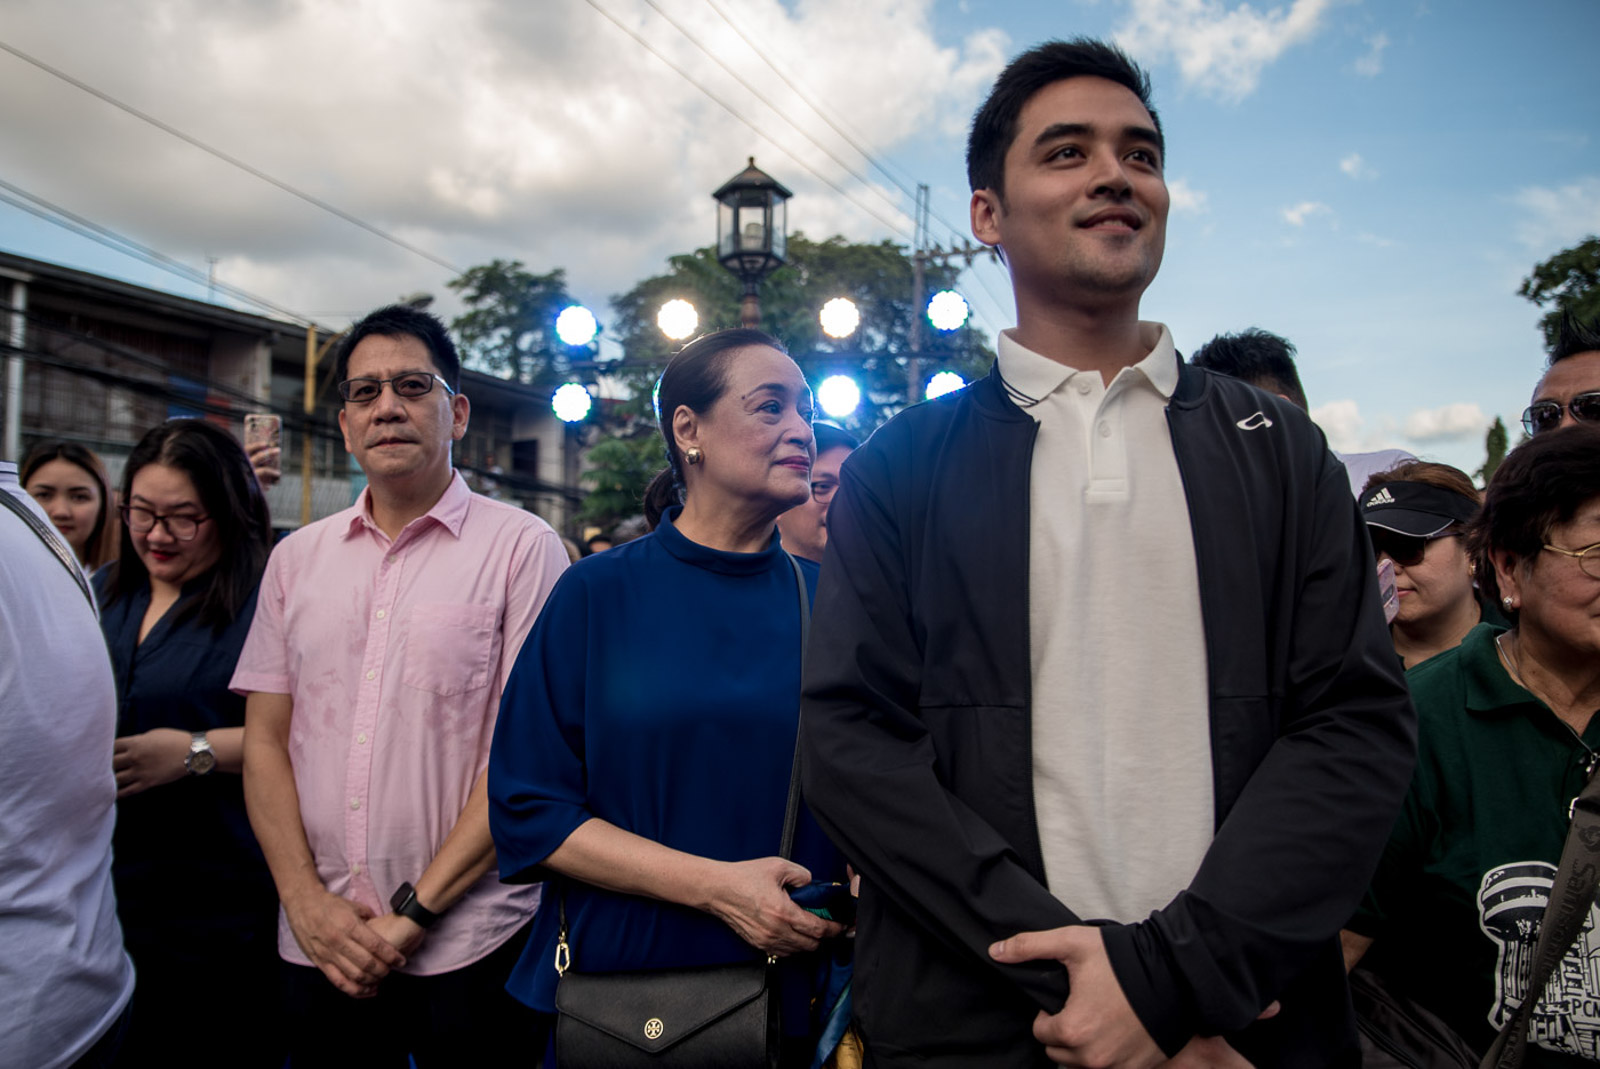 DEFINING MOMENT. Pasig Respresentative Roman Romulo (left) and actress Coney Reyes (center), mother of Vico Sotto (right), waiting for the Pasig mayor's turn to deliver his State of the City Address on October 8, 2019. Photo by Lisa Marie David/Rappler